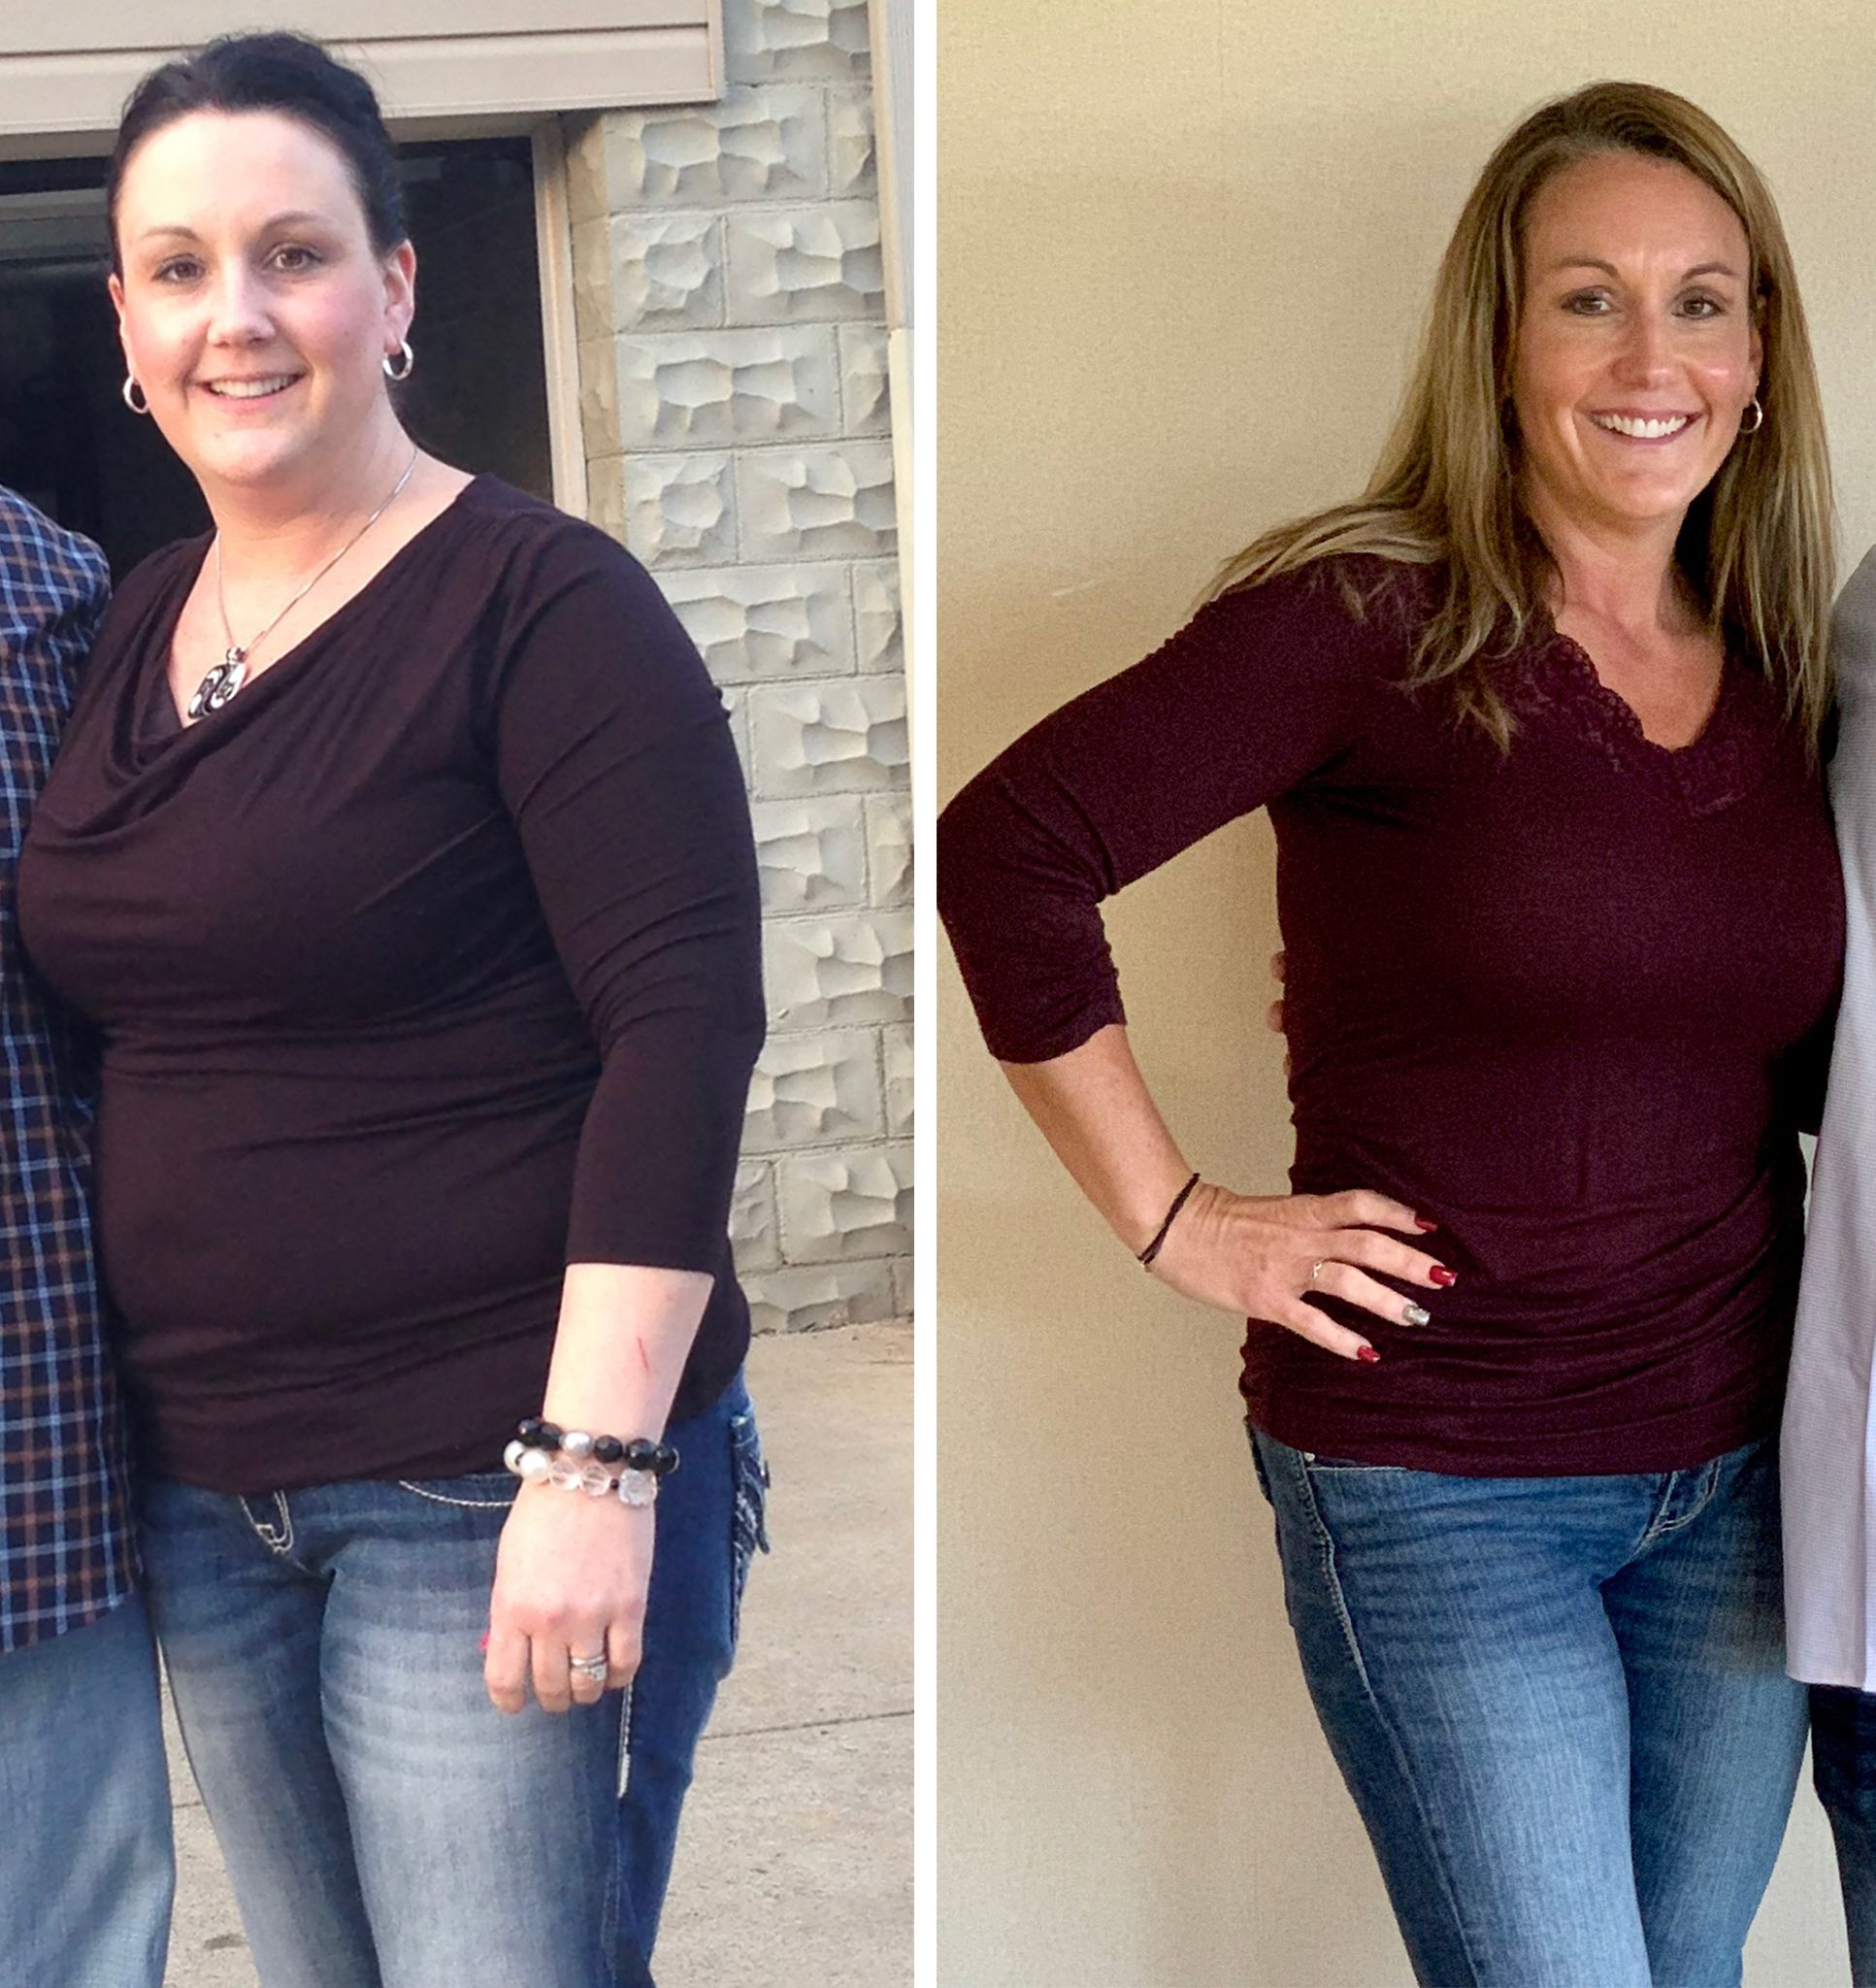 Her Sister Inspired Her to Start Running. She Lost 60 Pounds and Gained a Community